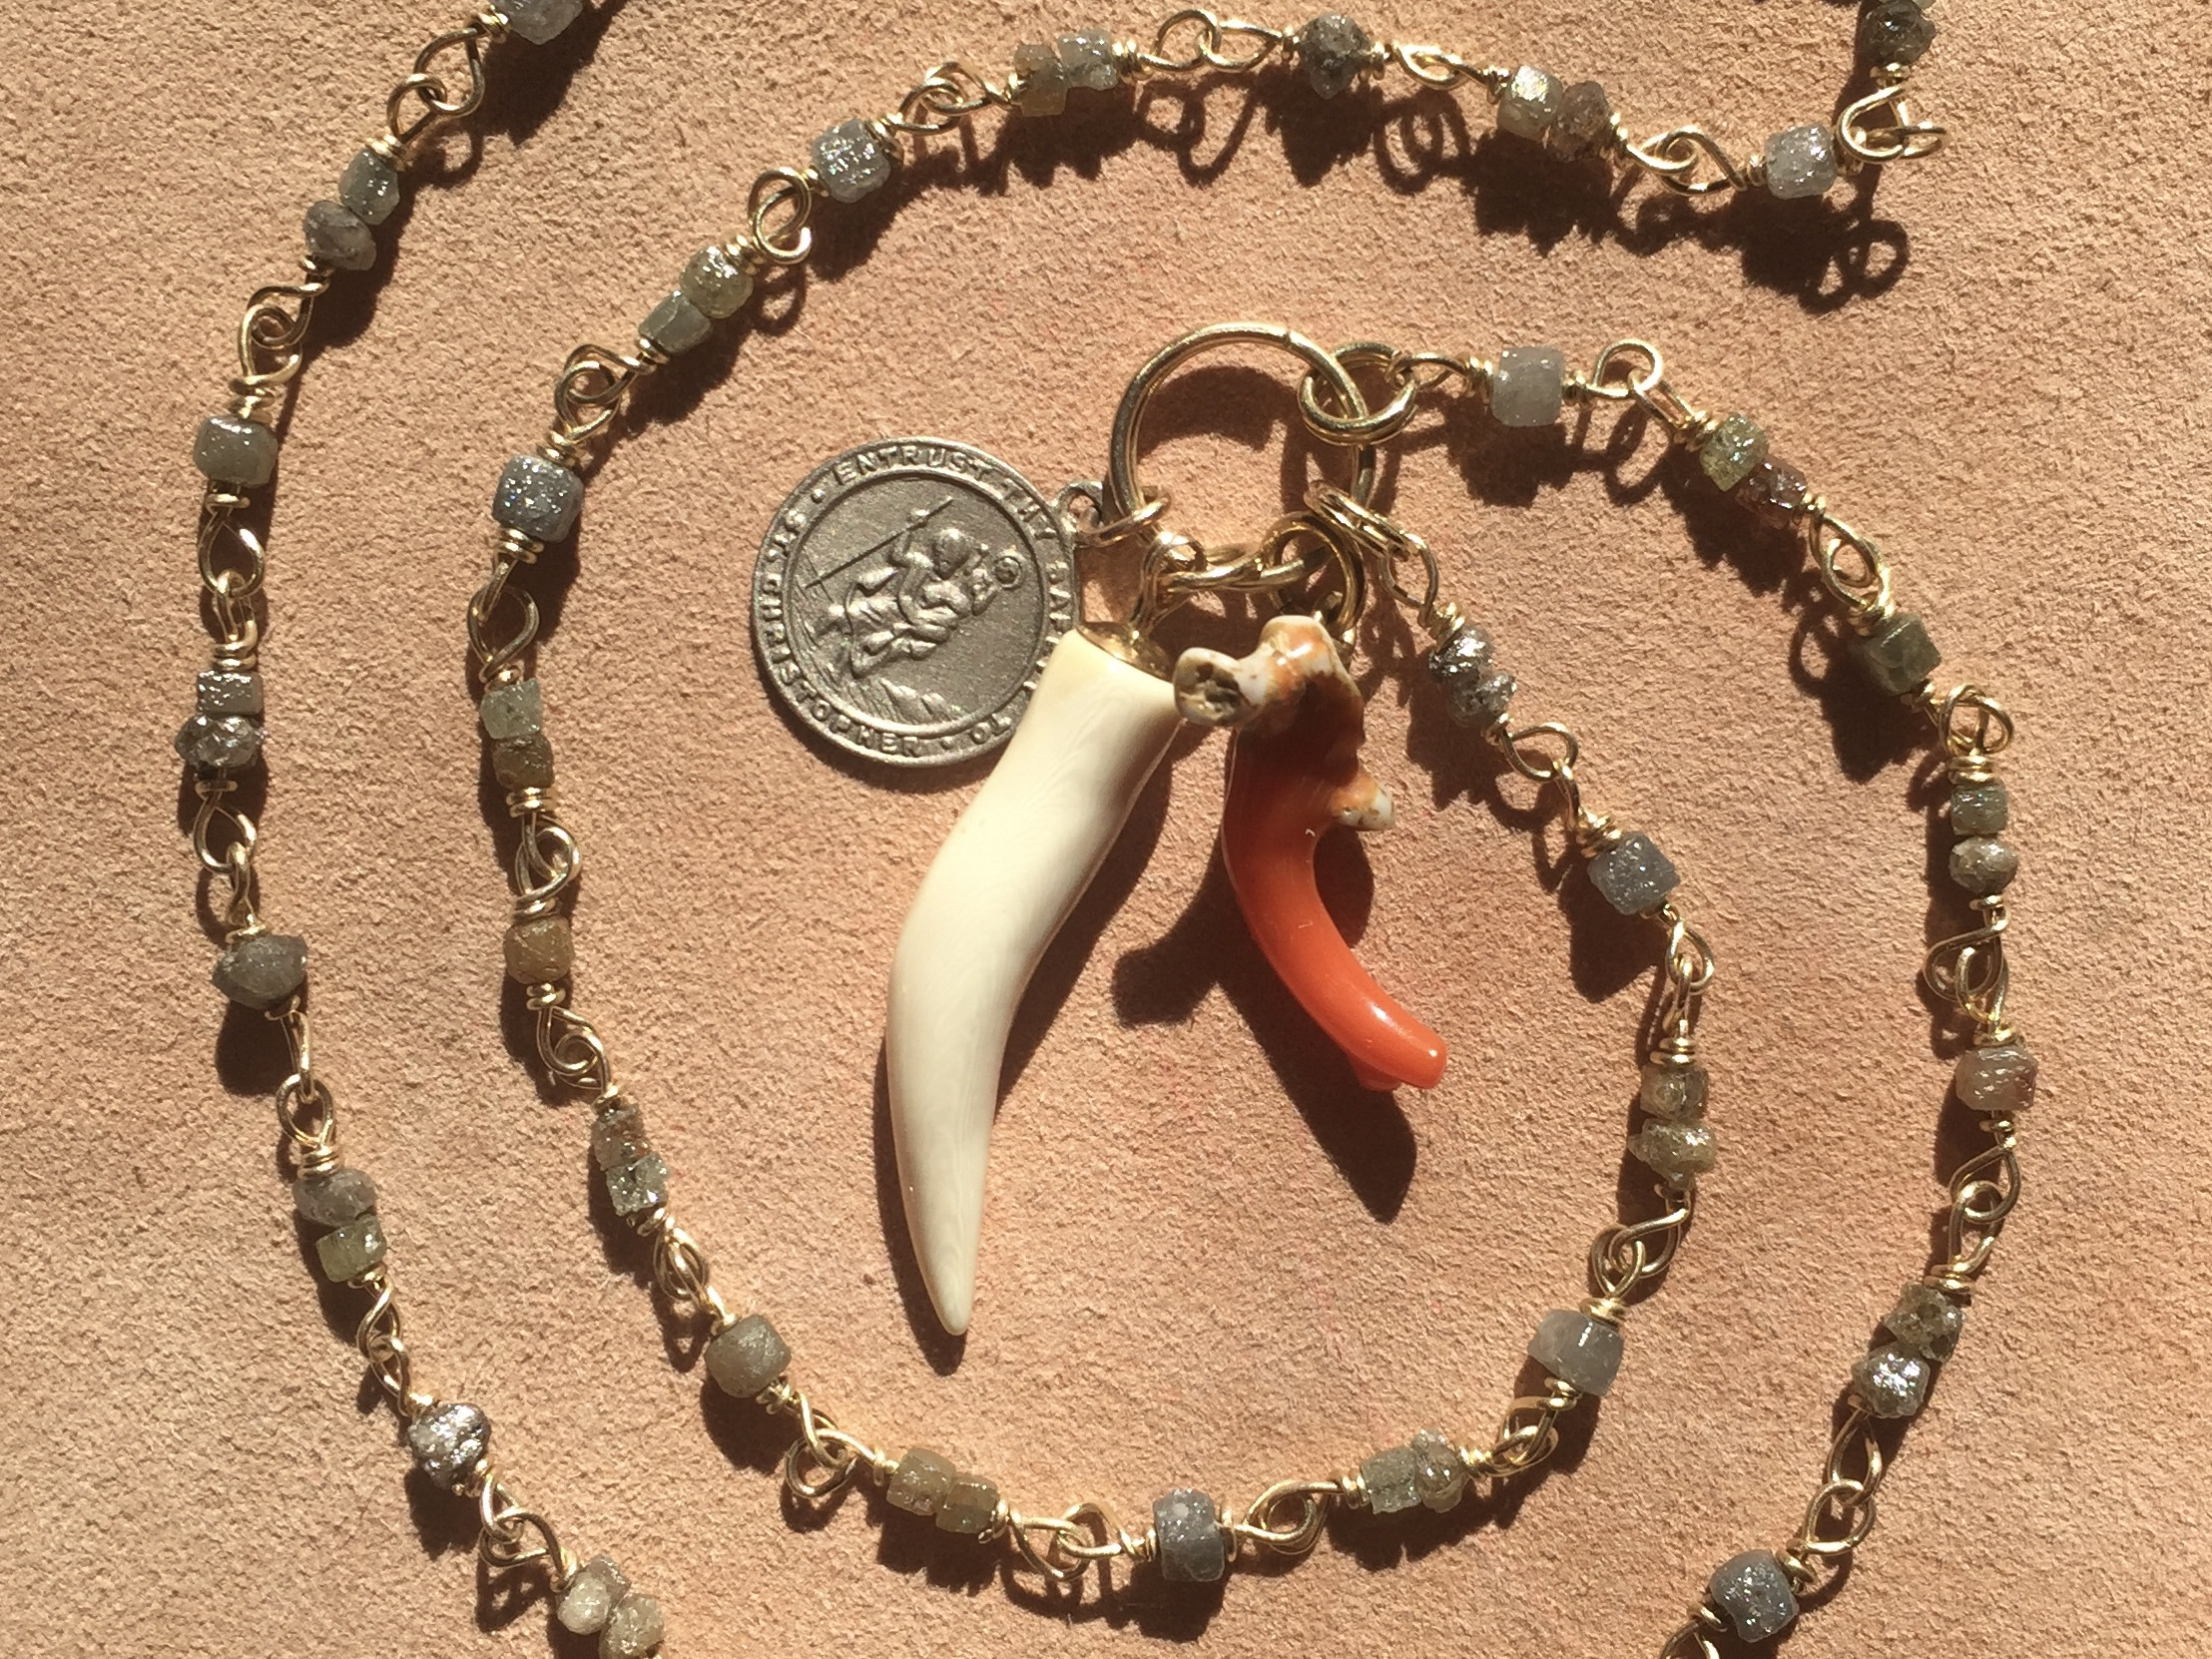 Rough Cut Diamond Chain with Coral, fossil Mammouth Tusk and white gold st christopher